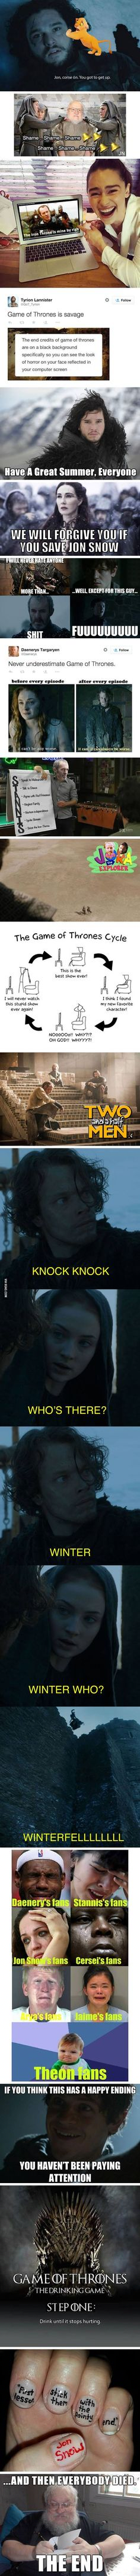 These Are The Best Internet Reactions To Game Of Thrones Season 5 Finale: